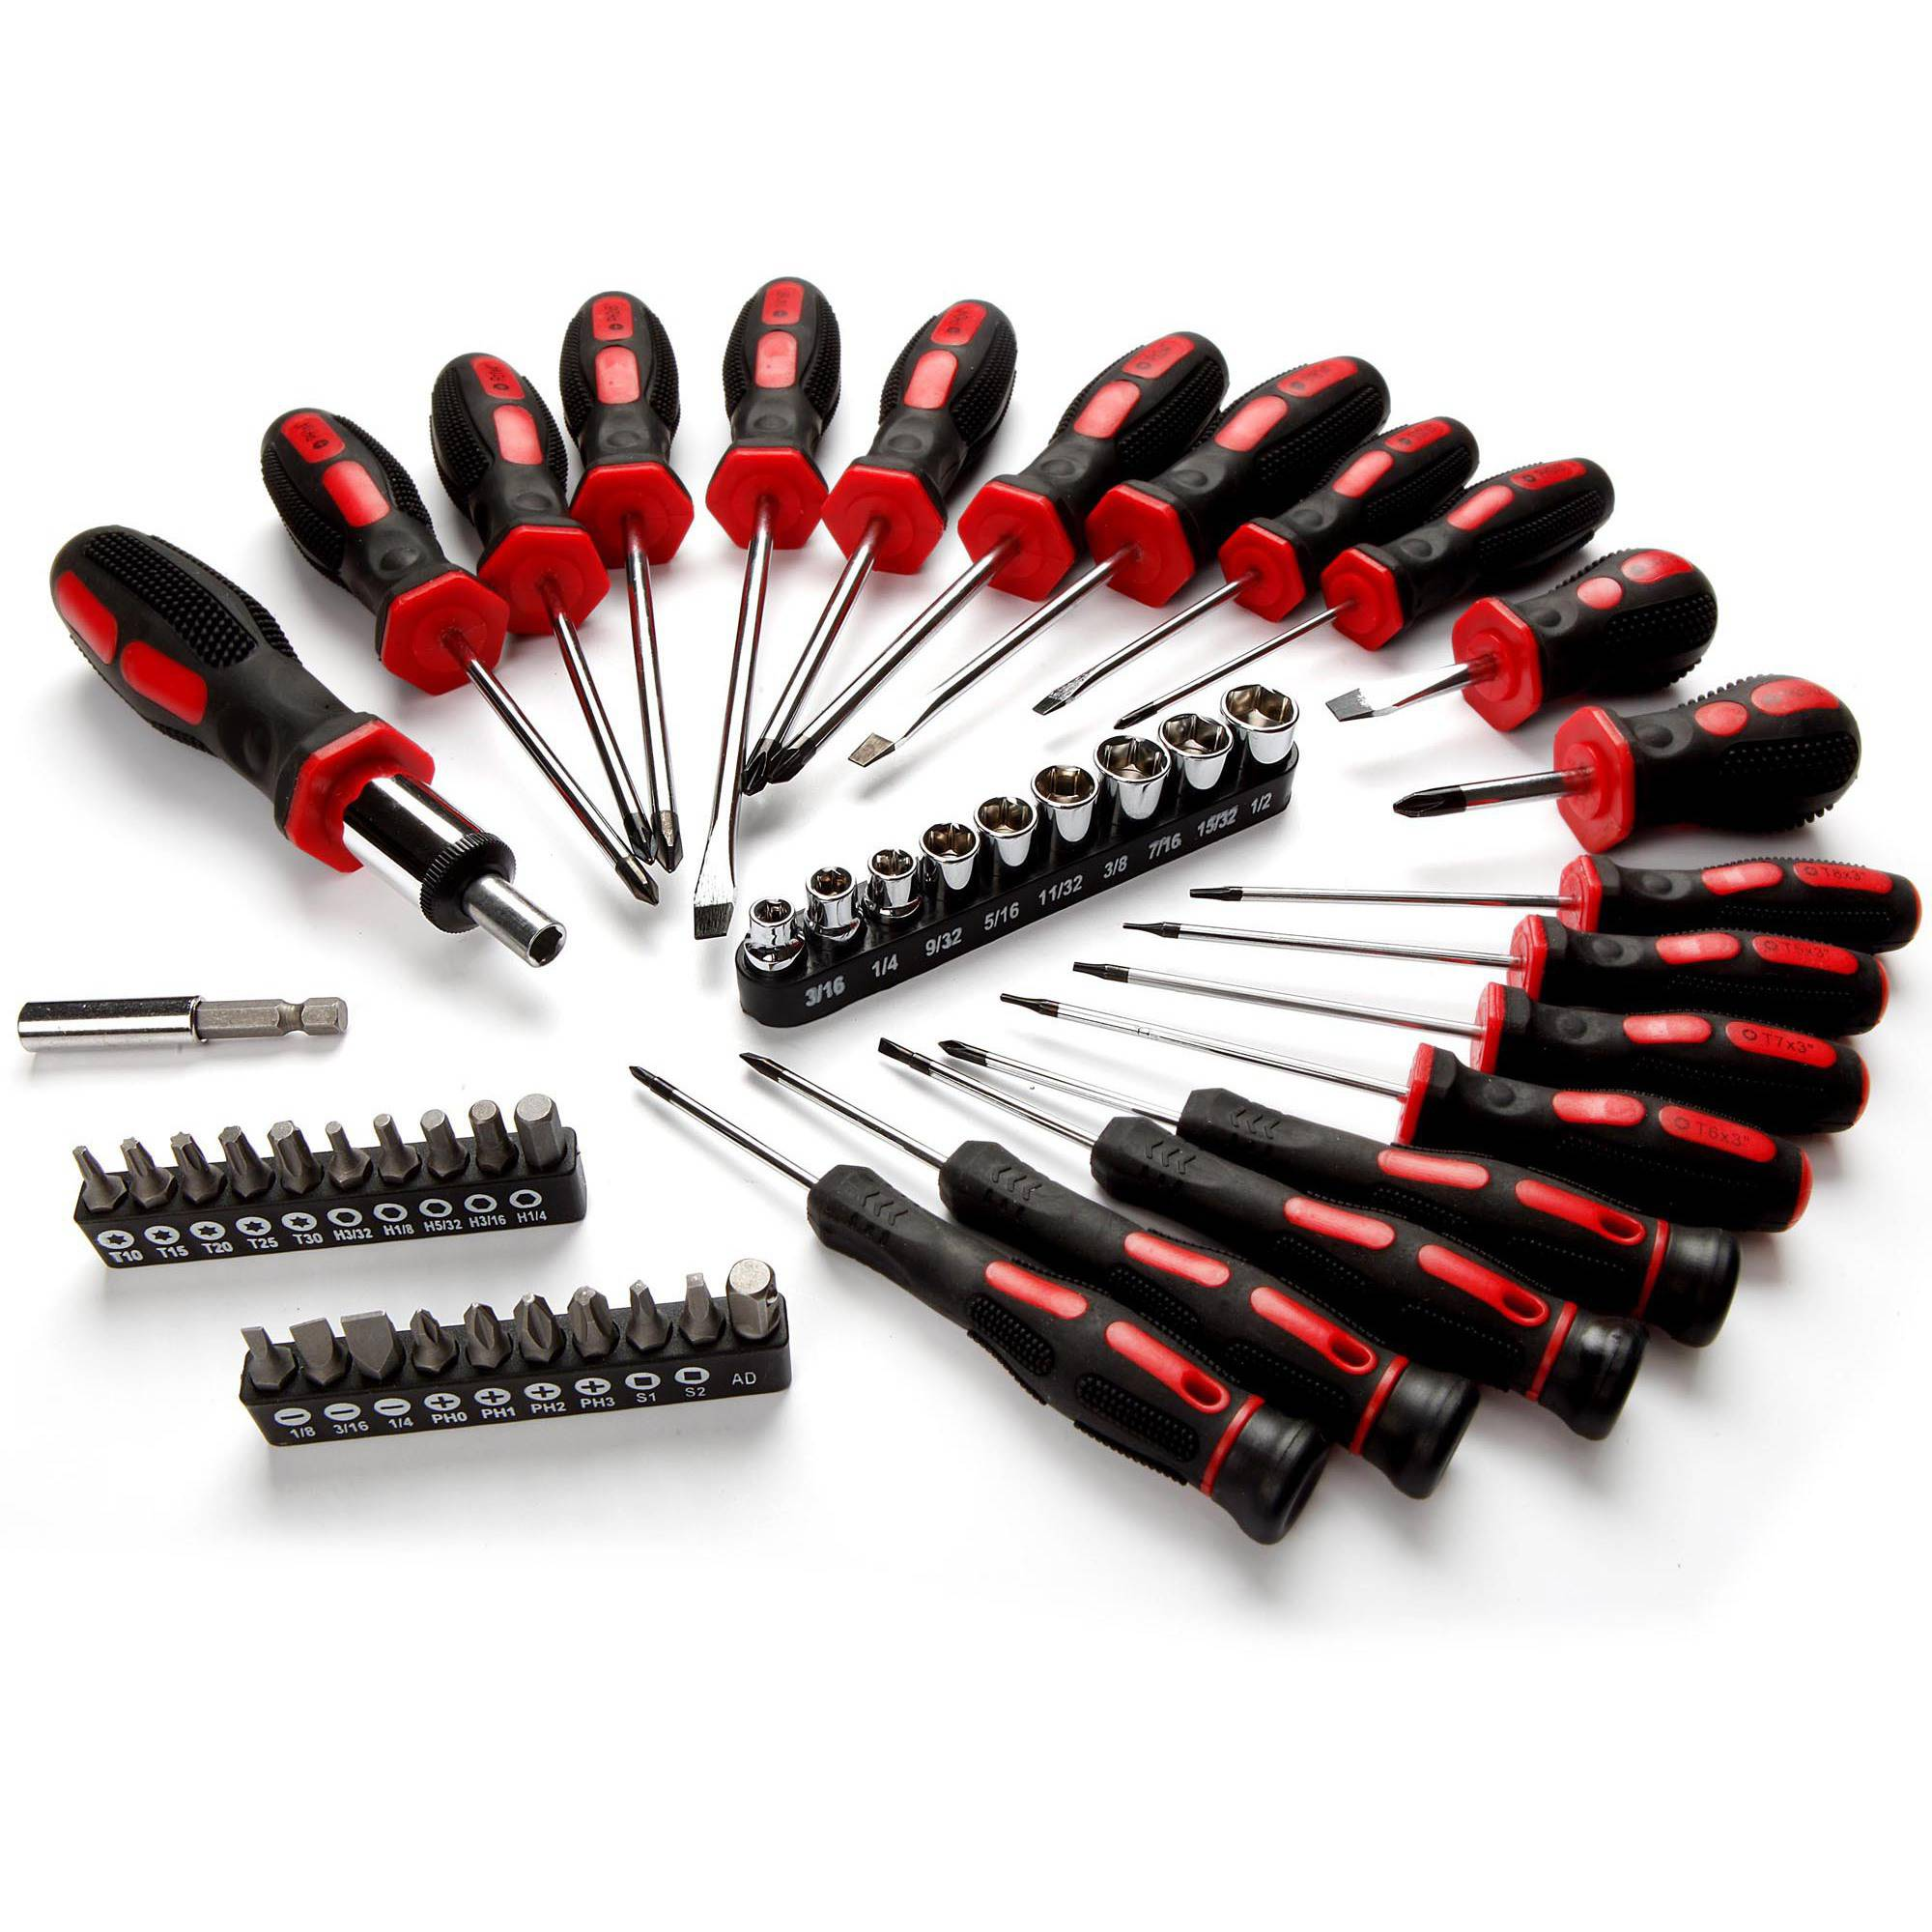 HyperTough 50 Piece Screwdriver Set